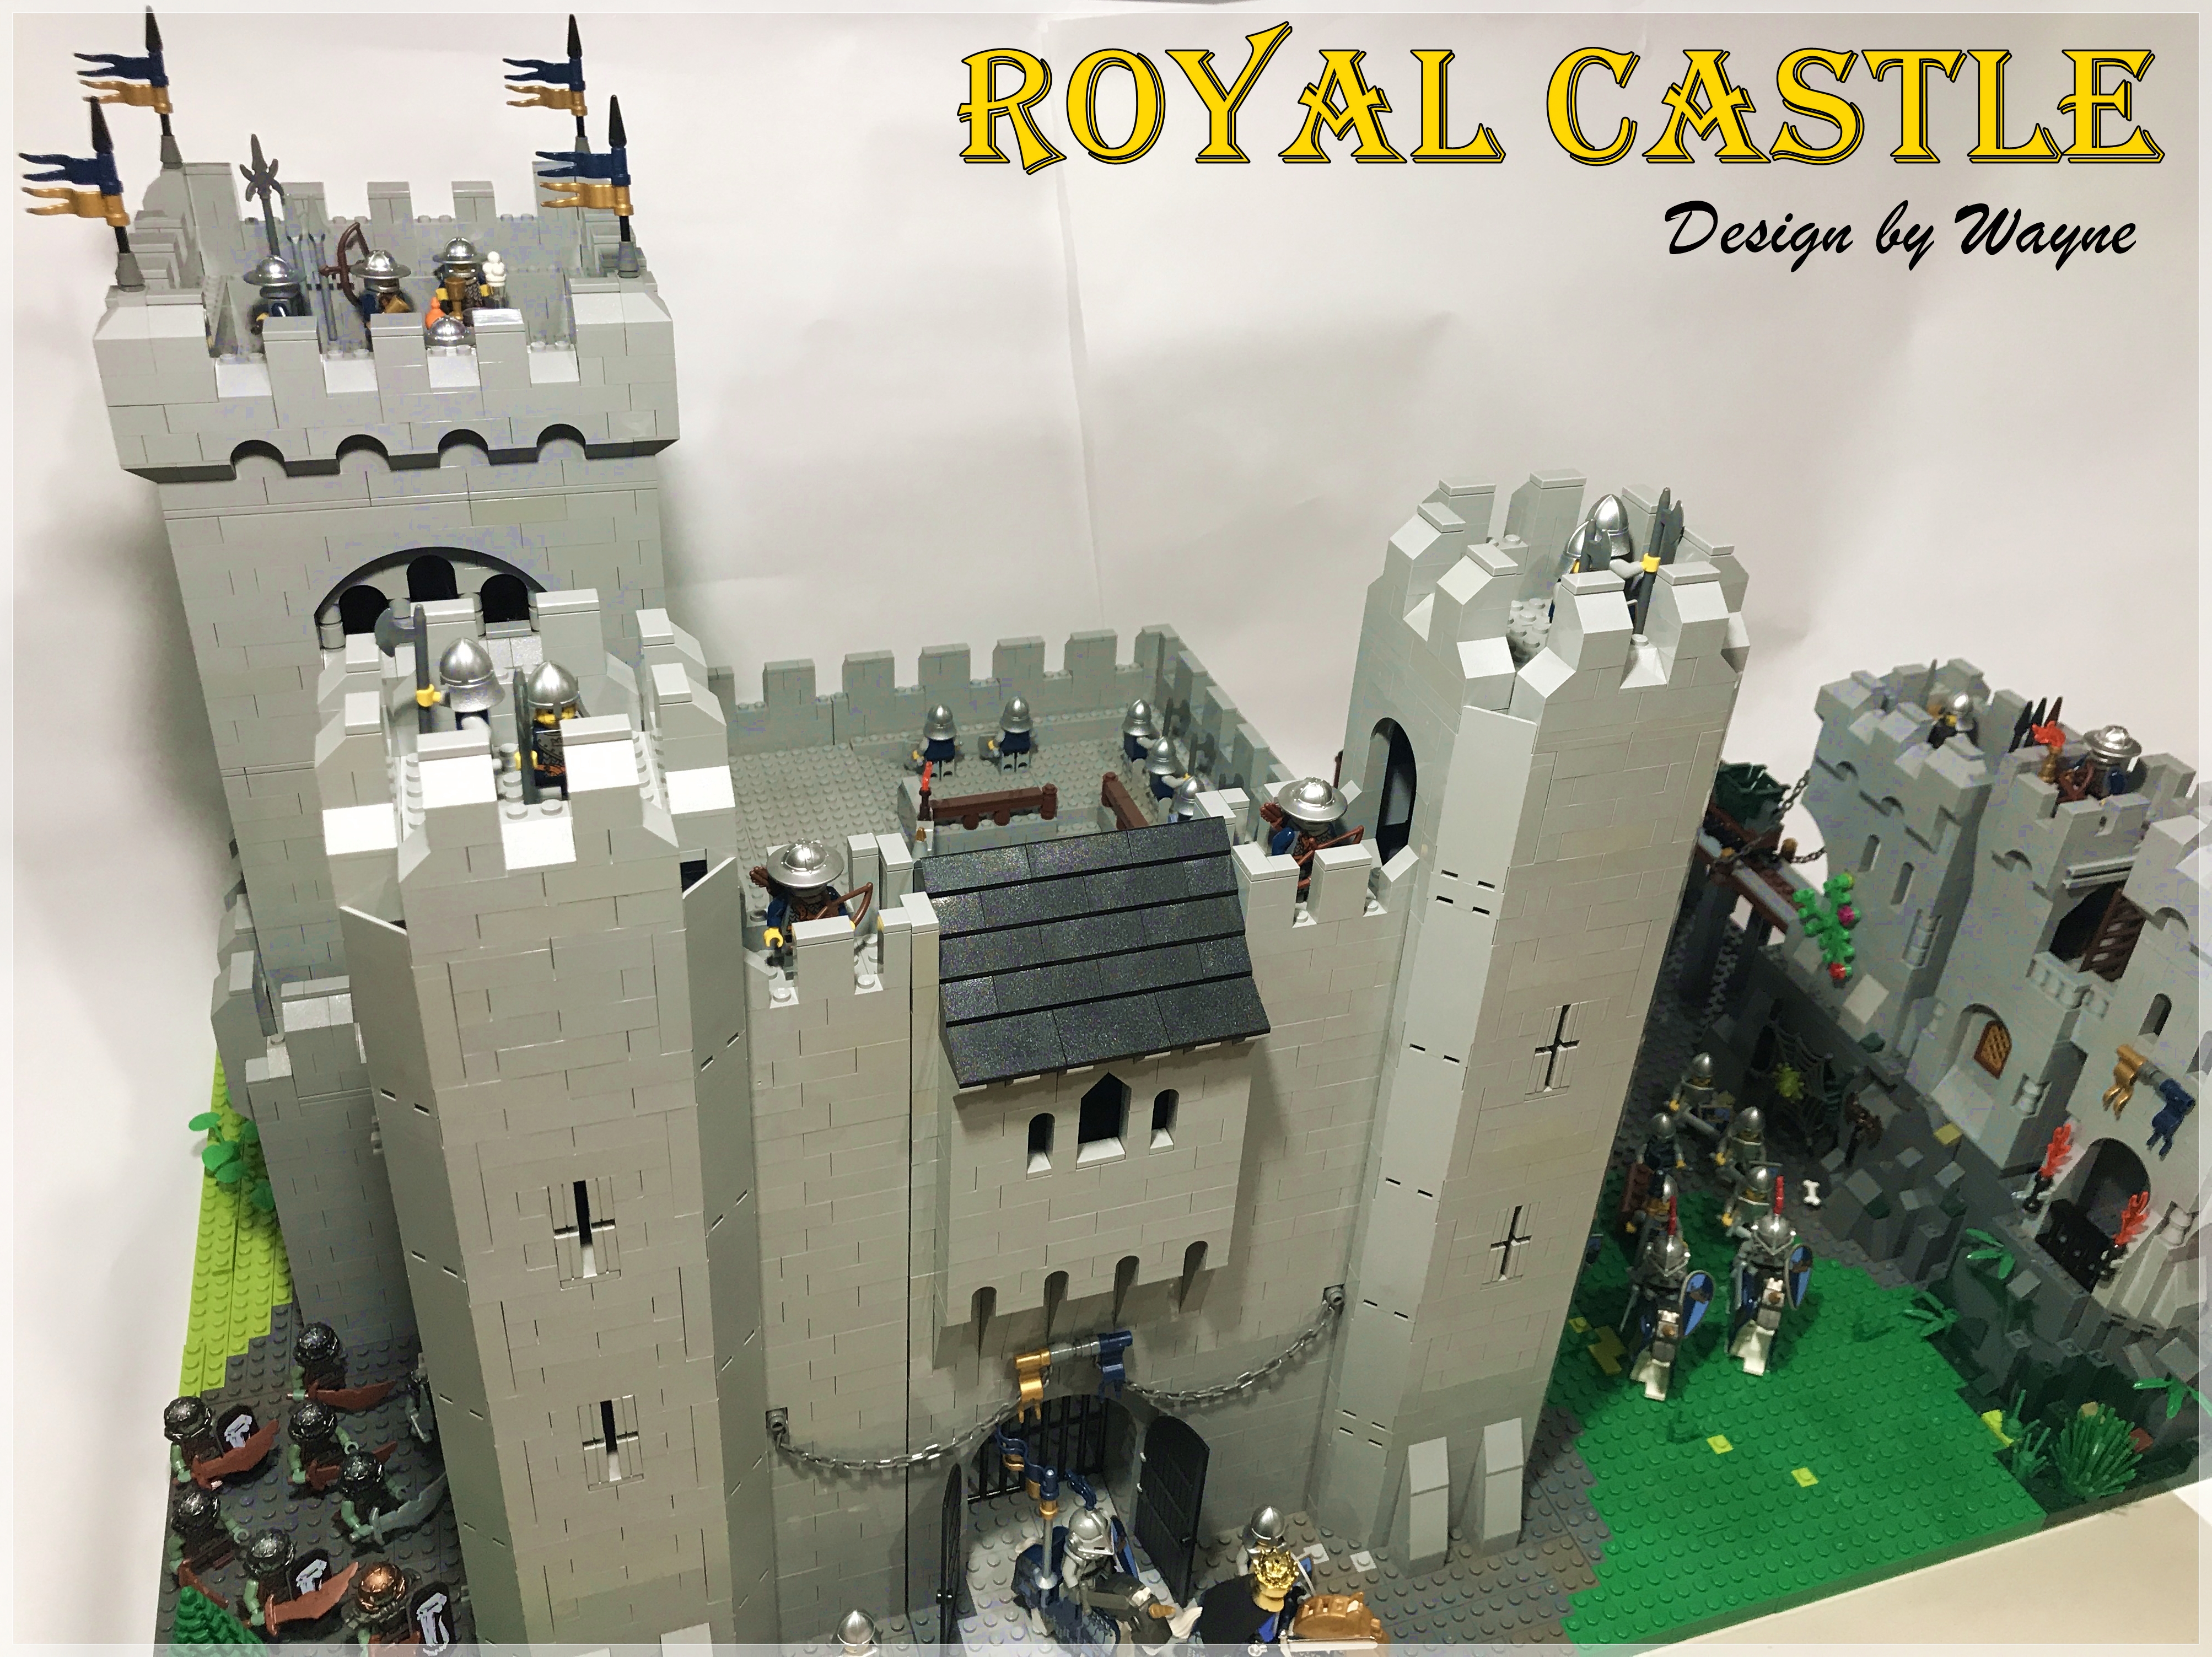 [Wayne MOC] Royal Castle 皇家騎士堡場景